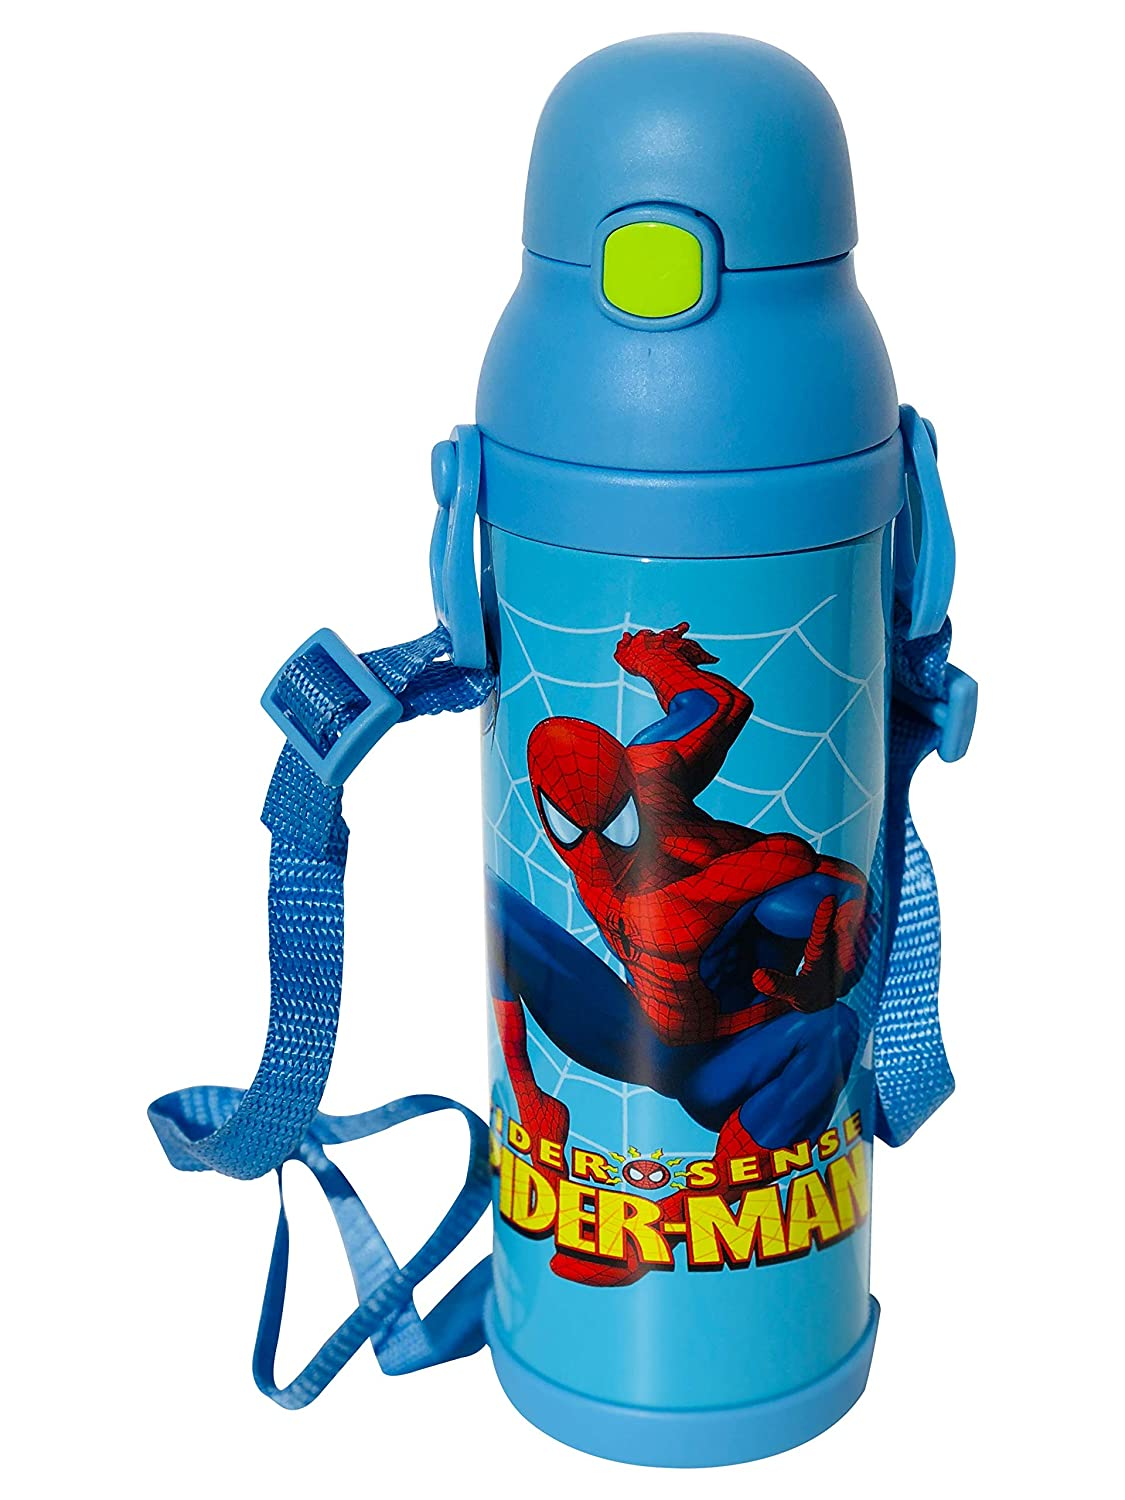 Personnage enfants Bouteille d'eau Bleu clair Spider-Man Bouteille thermos de 500  ml Idé al pour l'é cole, le sport, le camping, cyclisme et rester Hydraté e on the Go. cyclisme et rester Hydratée on the Go. Tong Lok